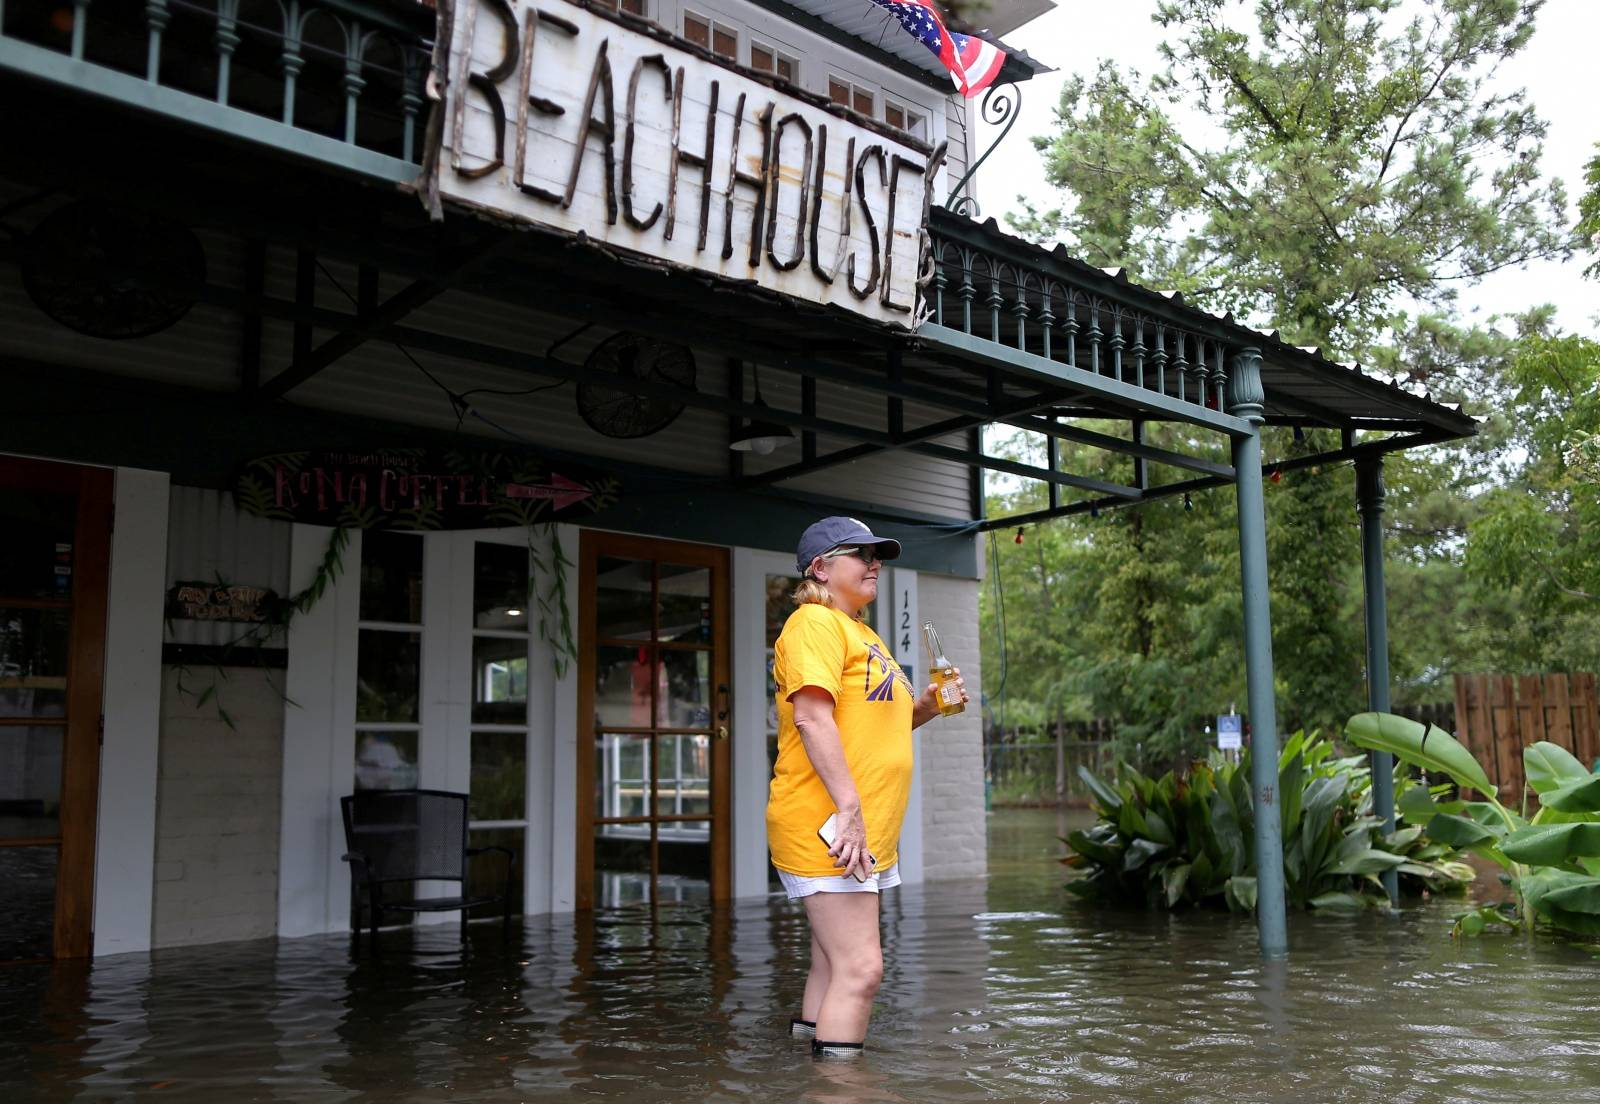 Robyn Iacona-Hilbert stands outside her flooded business after Hurricane Barry in Mandeville